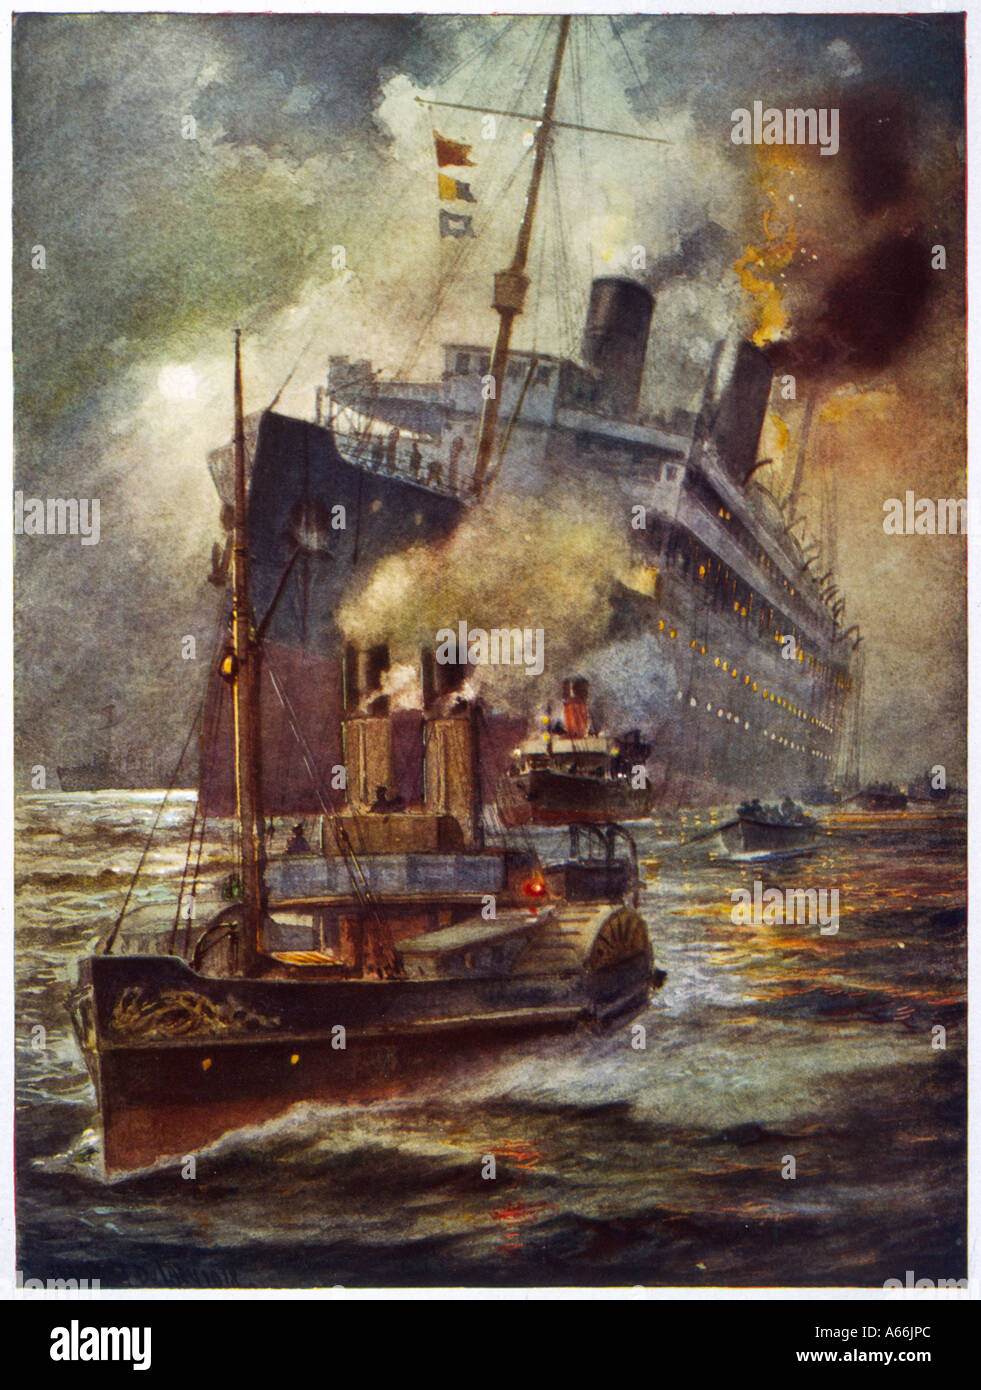 Torpedoed Ship In Port - Stock Image